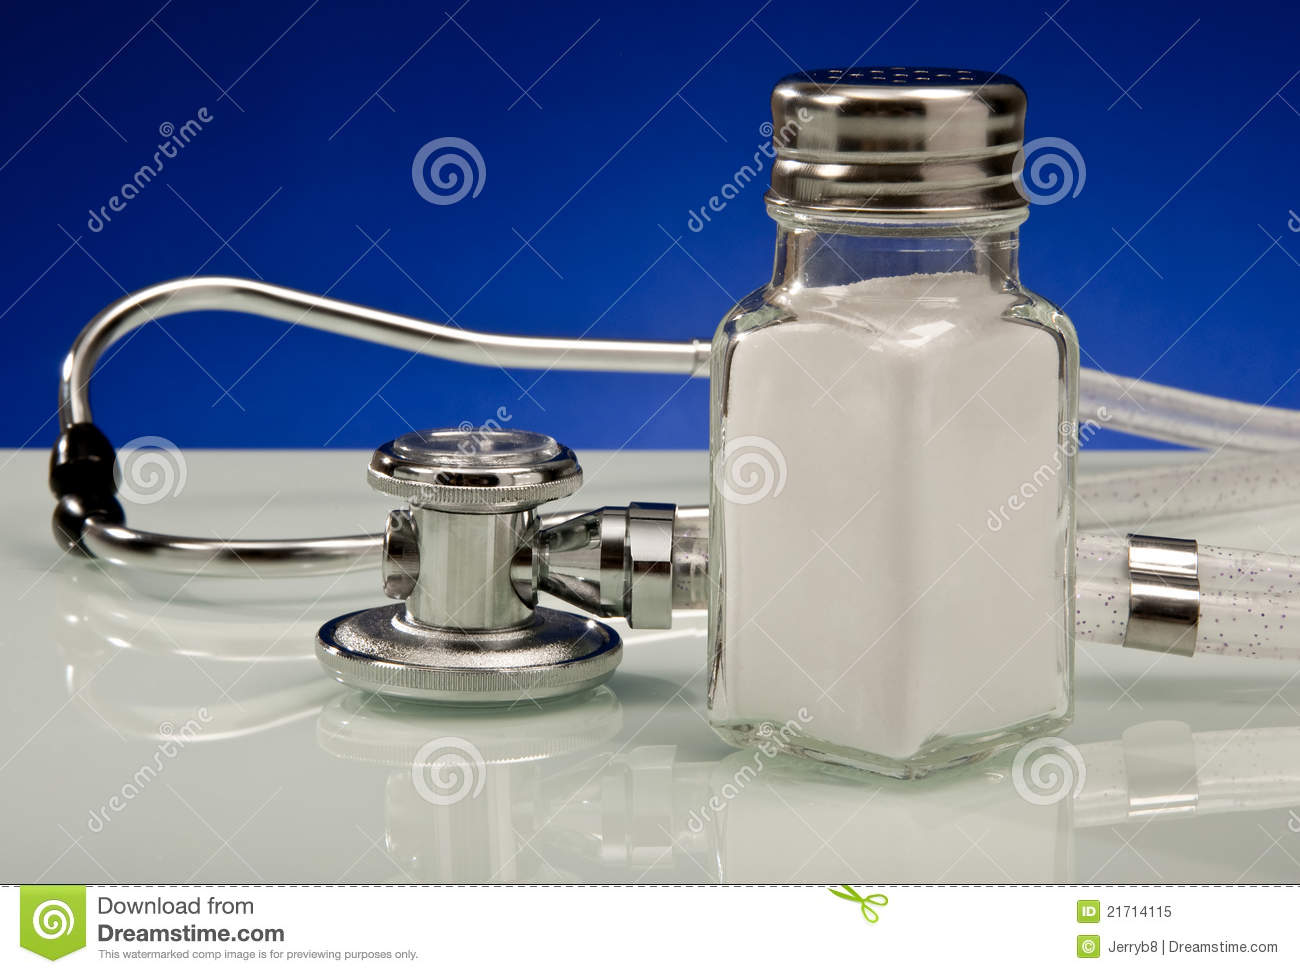 Salt Dangers and Stethoscope